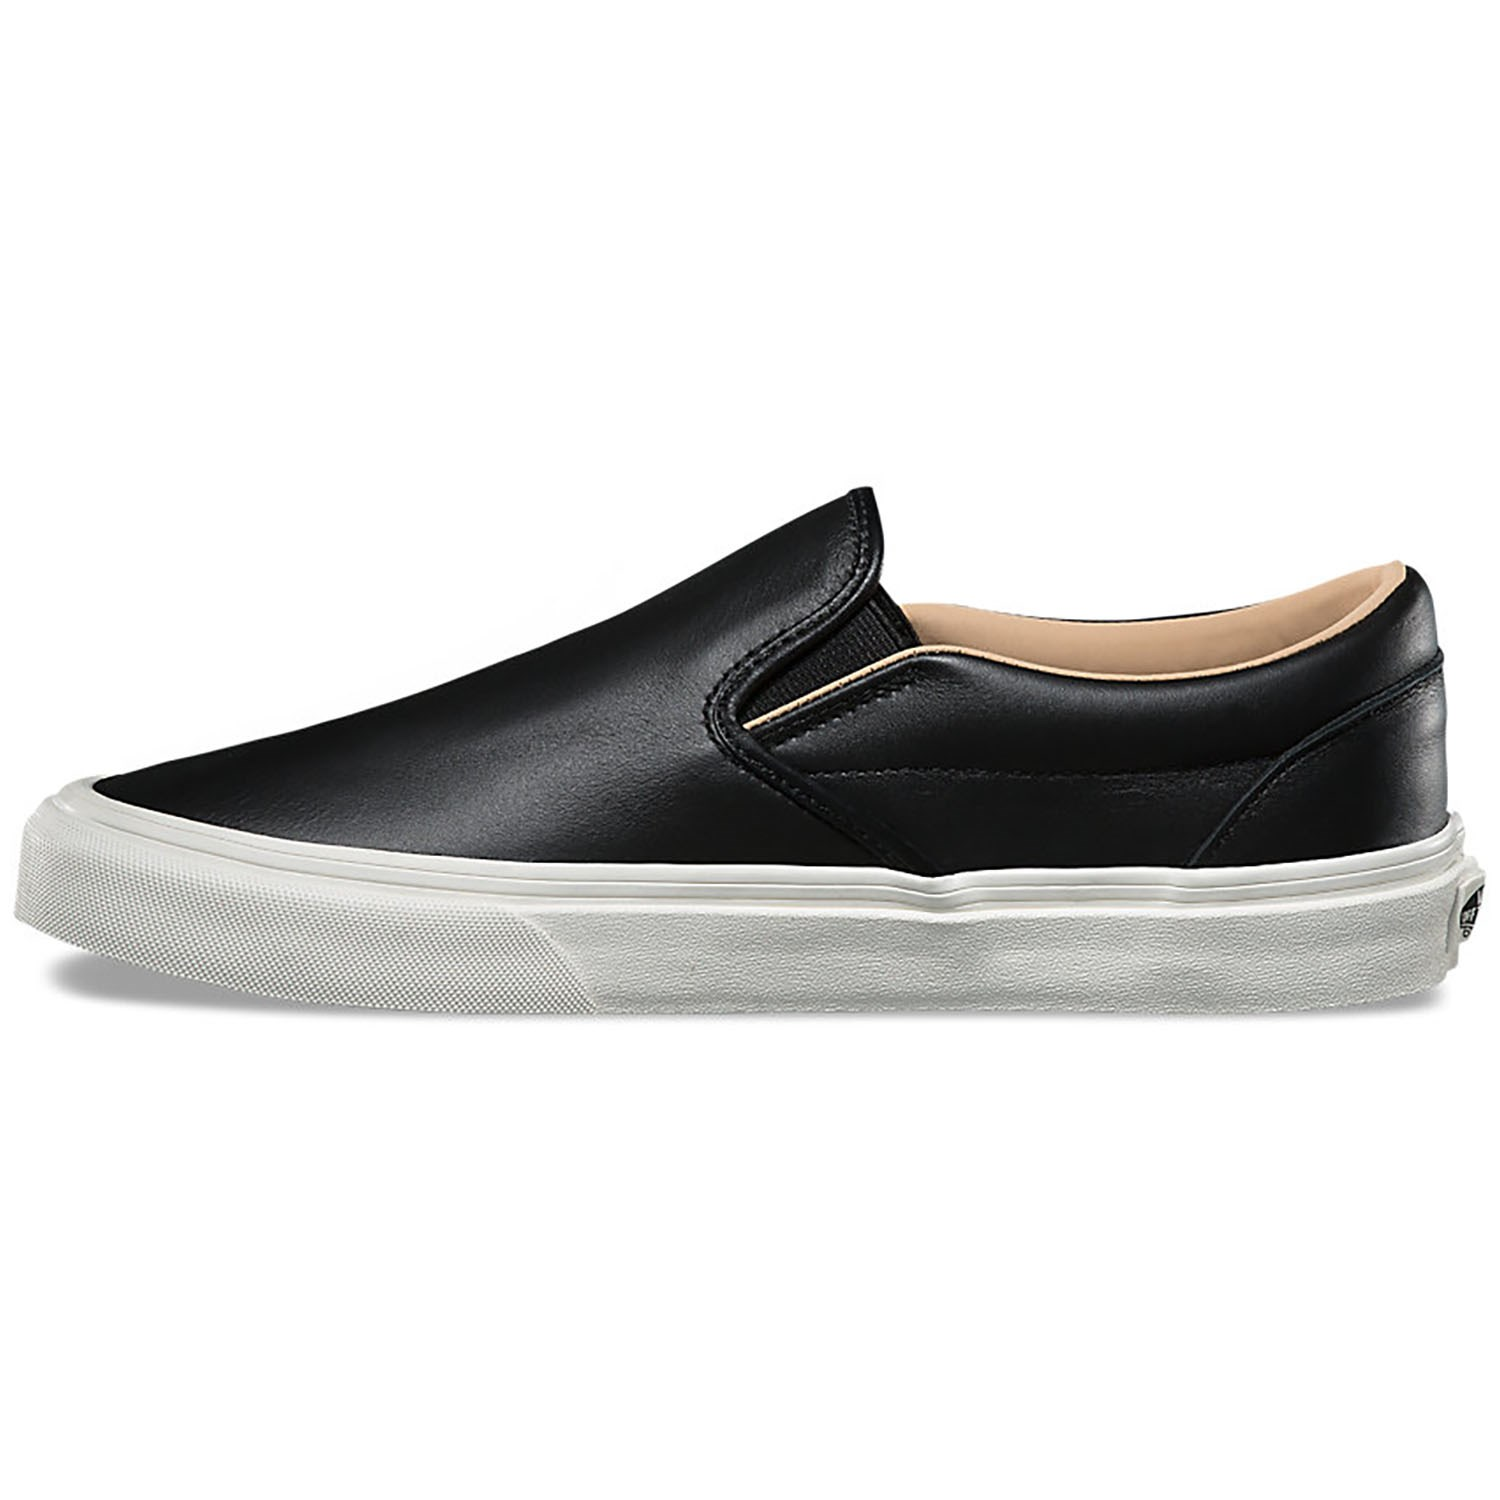 53a2638845 Vans Lux Leather Classic Slip-On Shoes